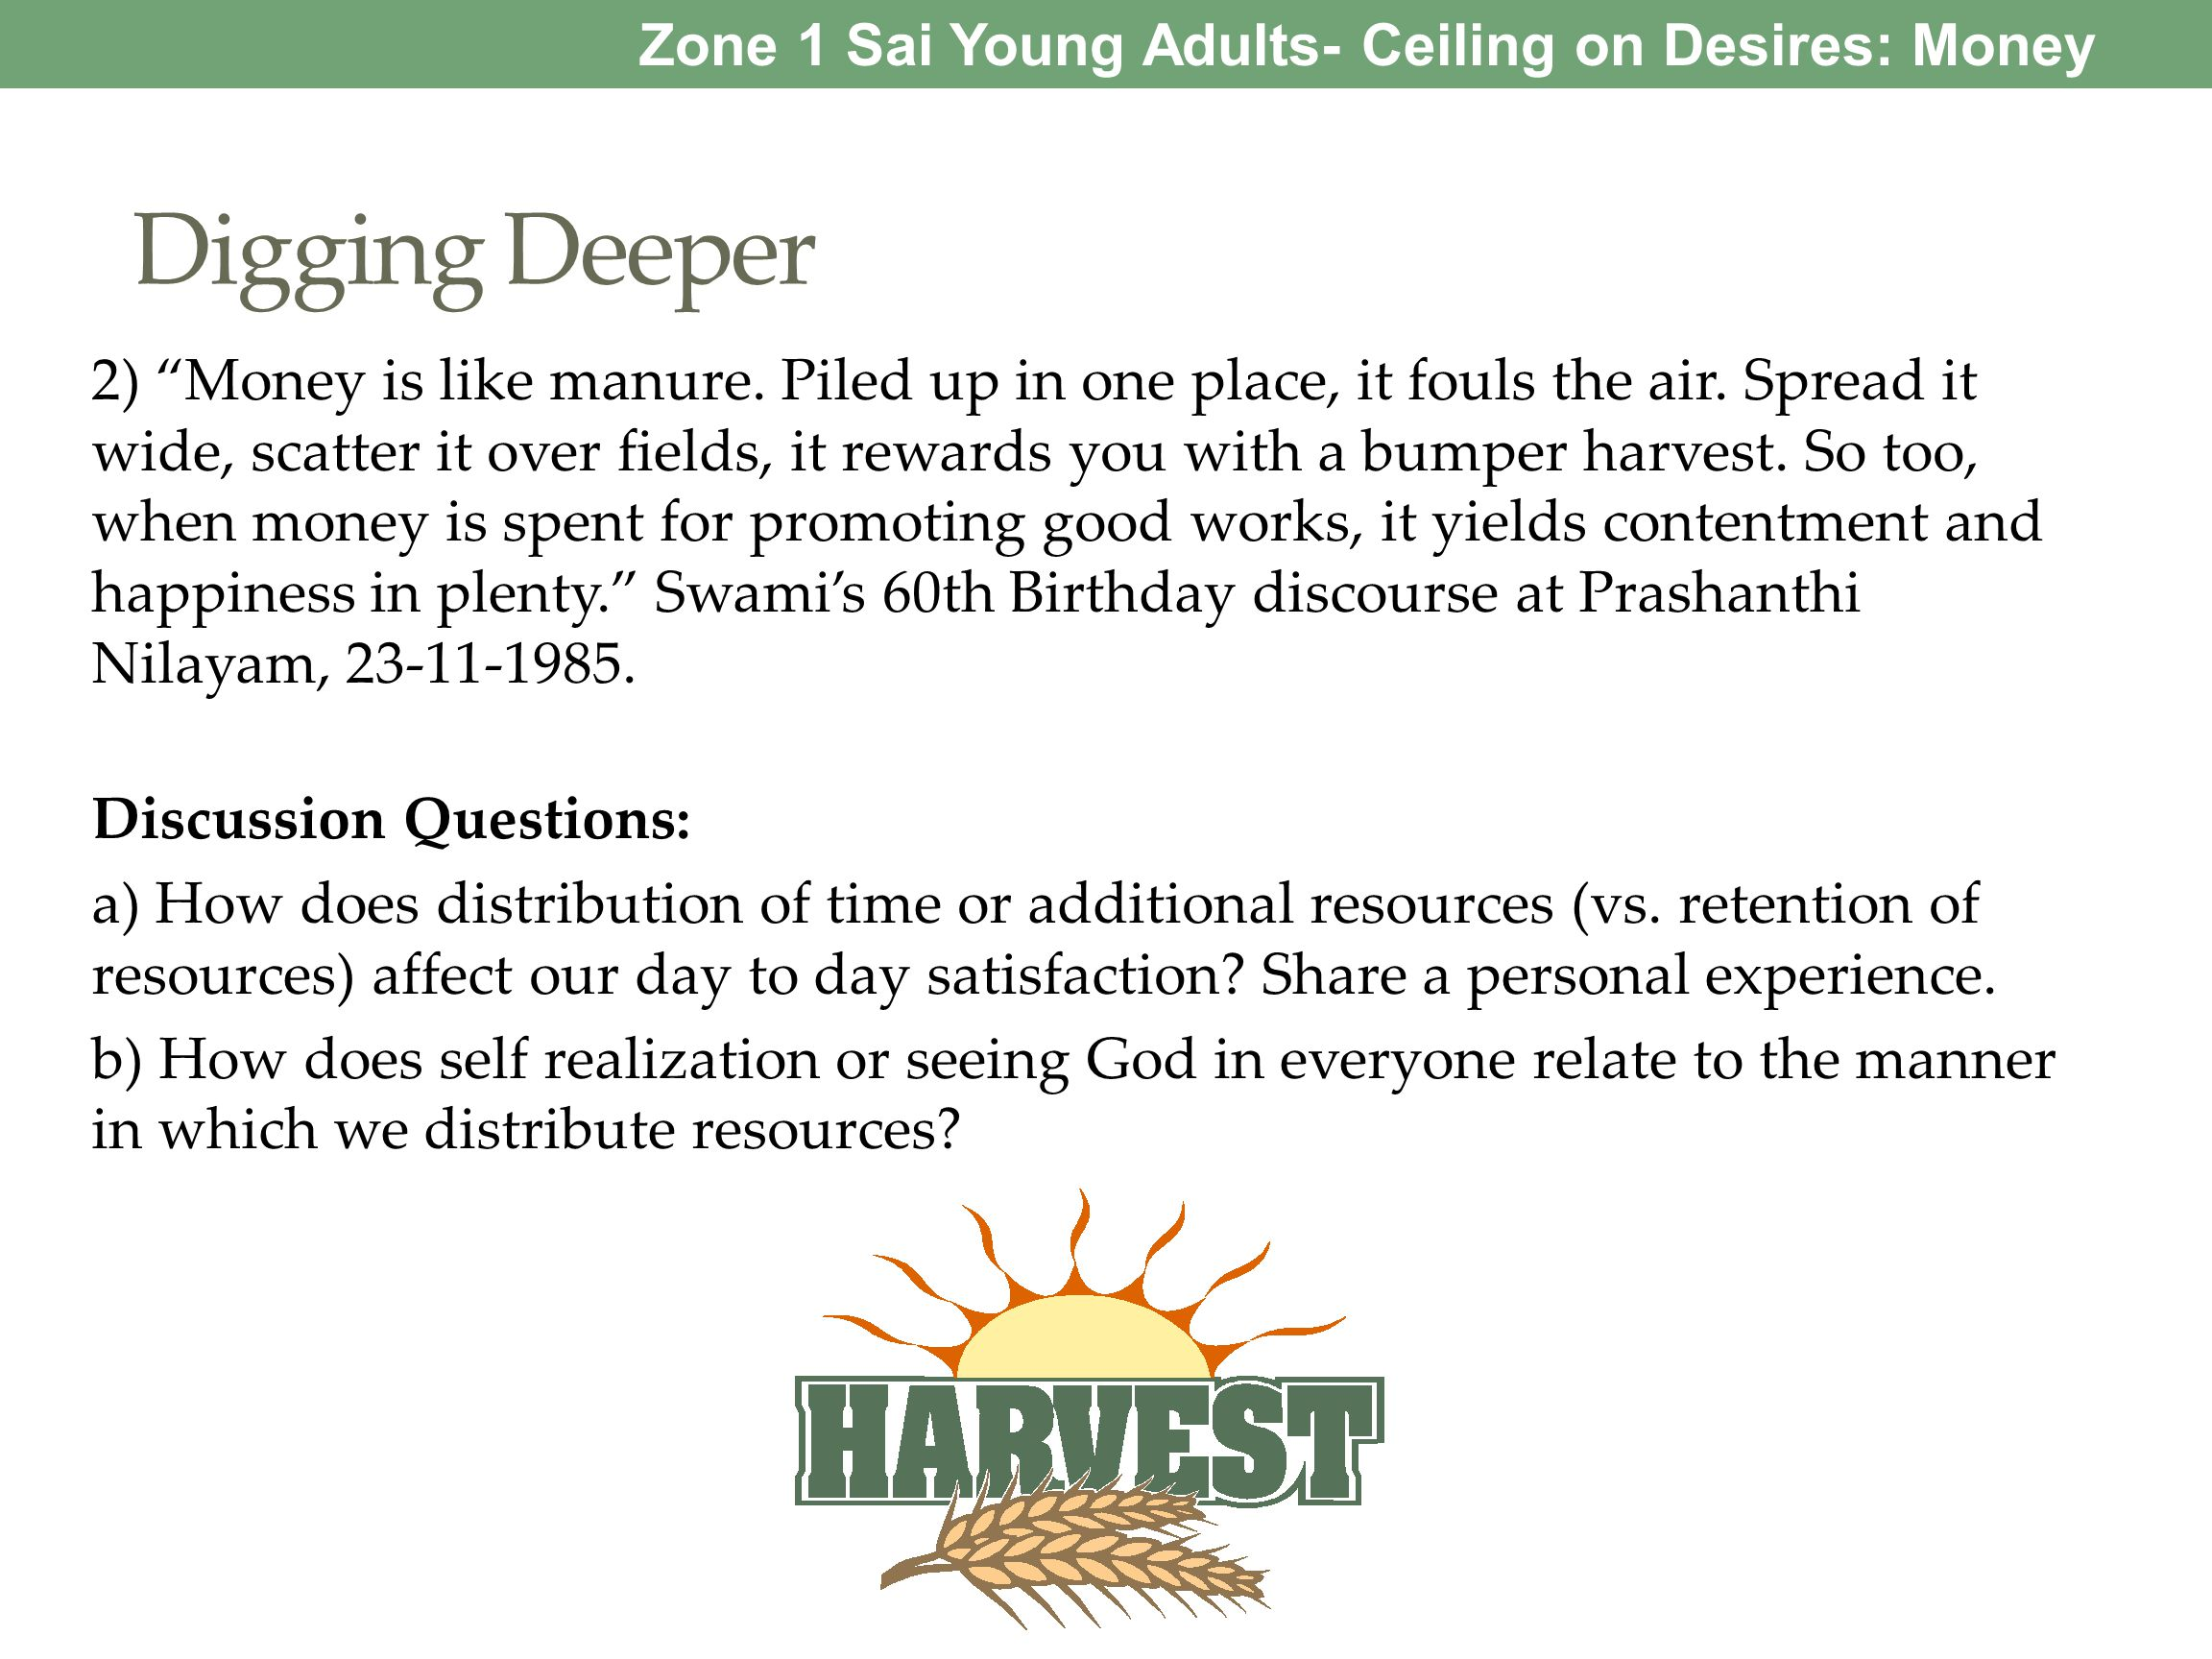 Digging Deeper Zone 1 Sai Young Adults- Ceiling on Desires: Money